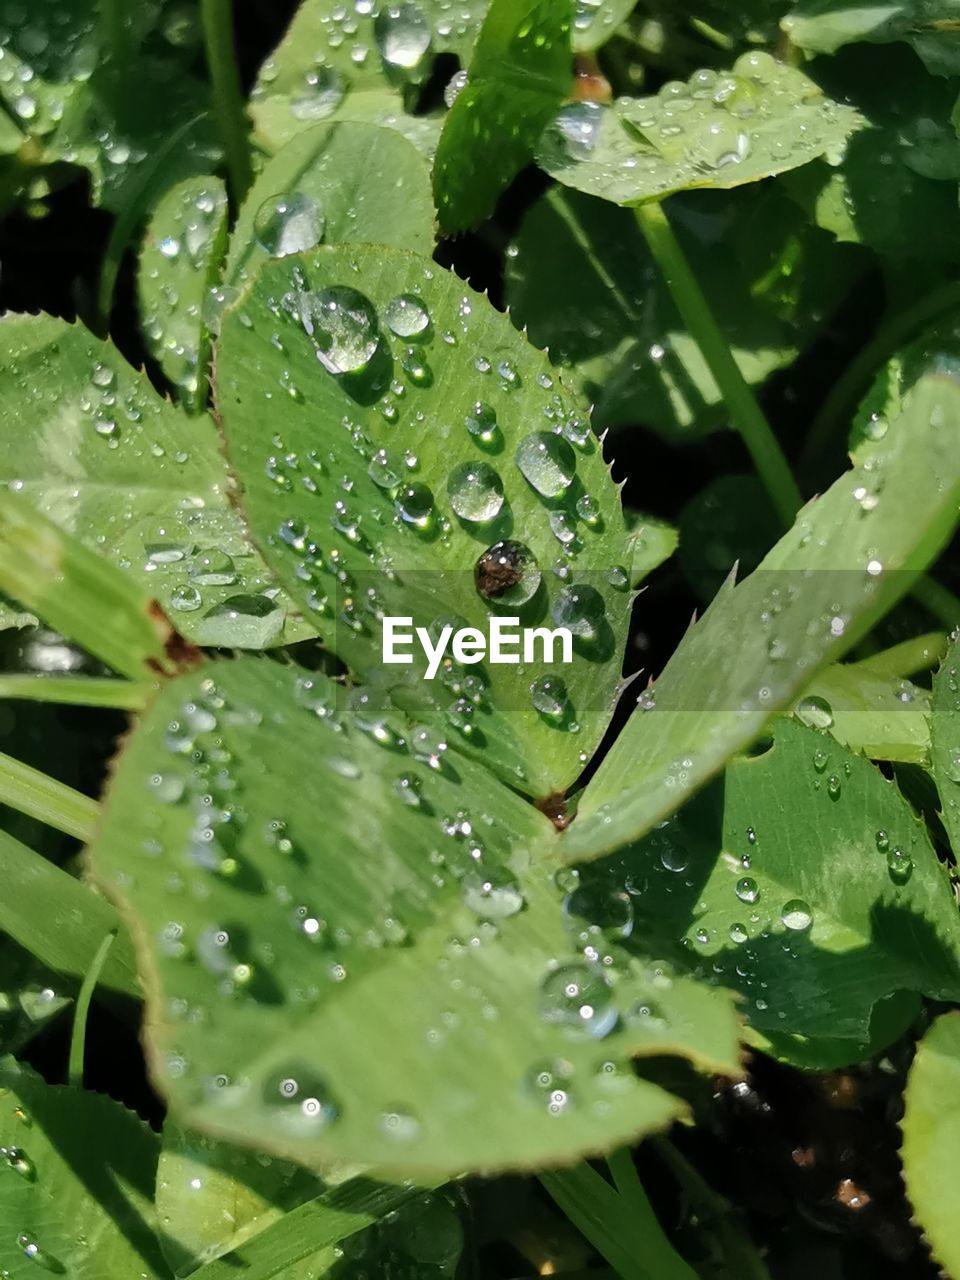 drop, water, wet, green color, plant part, leaf, growth, beauty in nature, nature, close-up, freshness, plant, no people, rain, purity, dew, day, full frame, raindrop, leaves, rainy season, outdoors